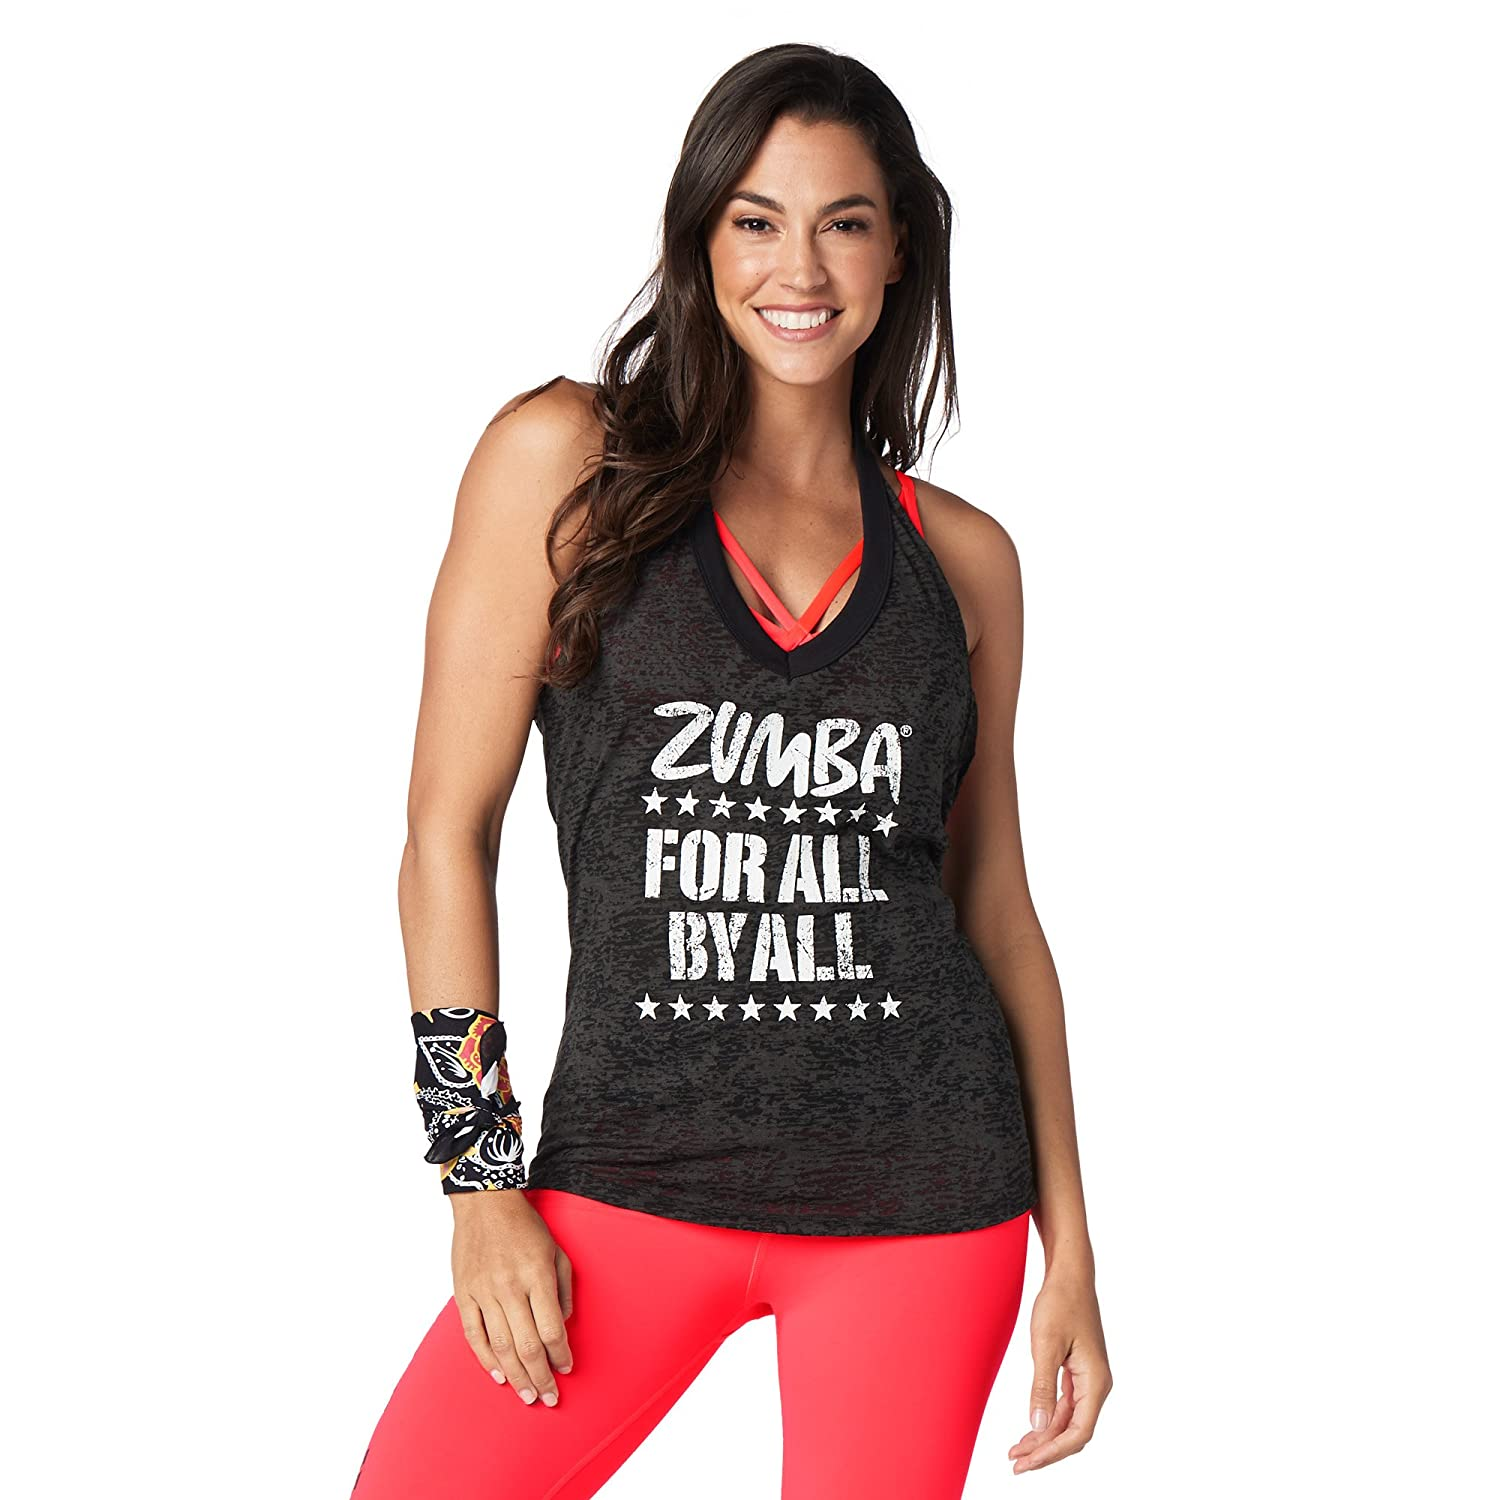 Zumba Women's Fashion Print Loose Fit Workout Halter Top Tank